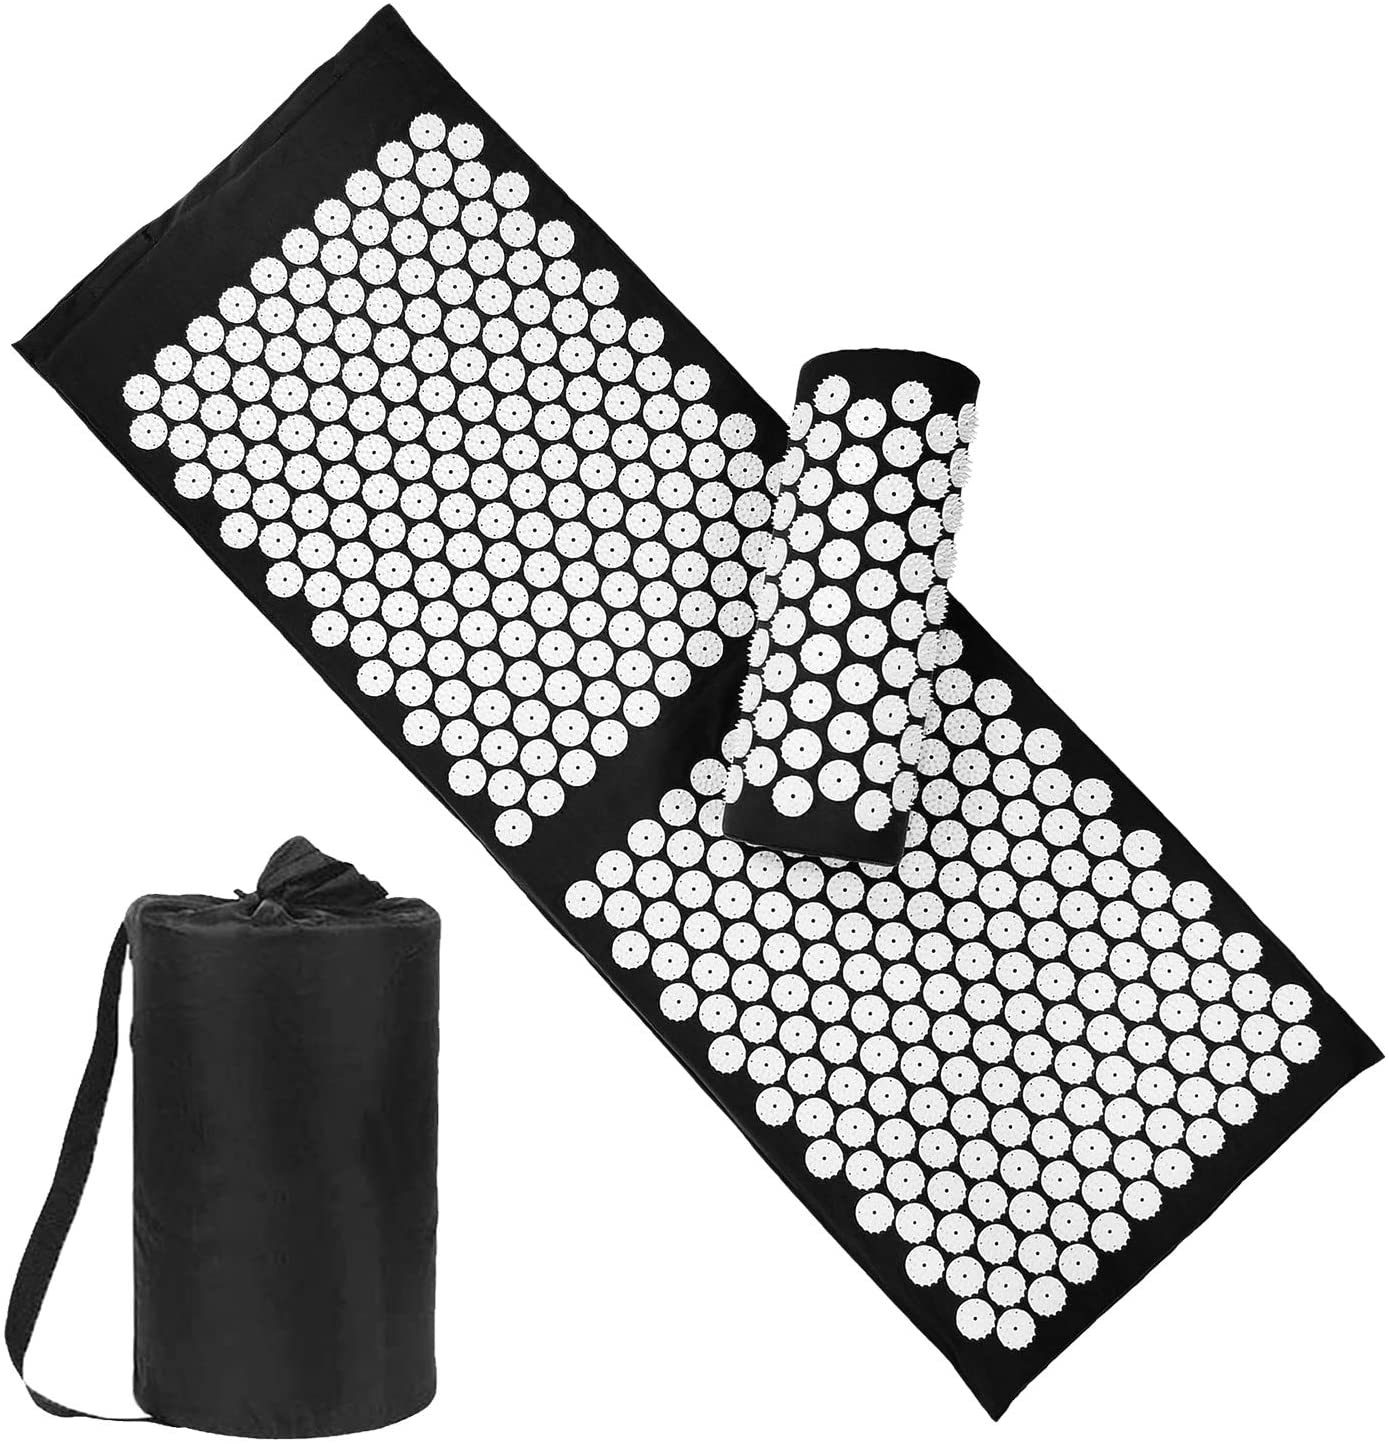 10. XiaoMaGe Yoga Acupressure Mat and Pillow Set